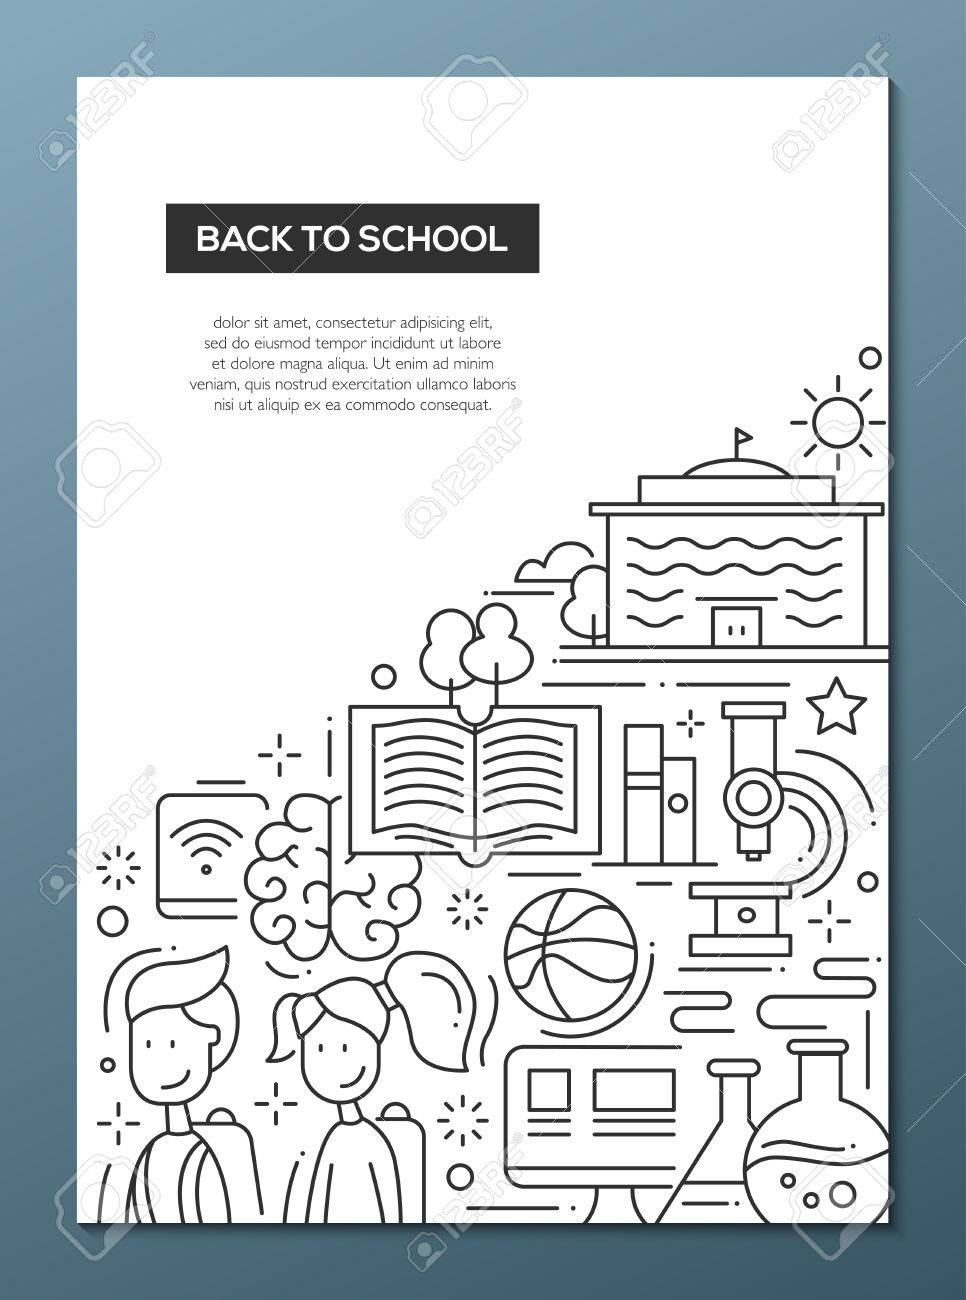 back to school education simple line design poster template